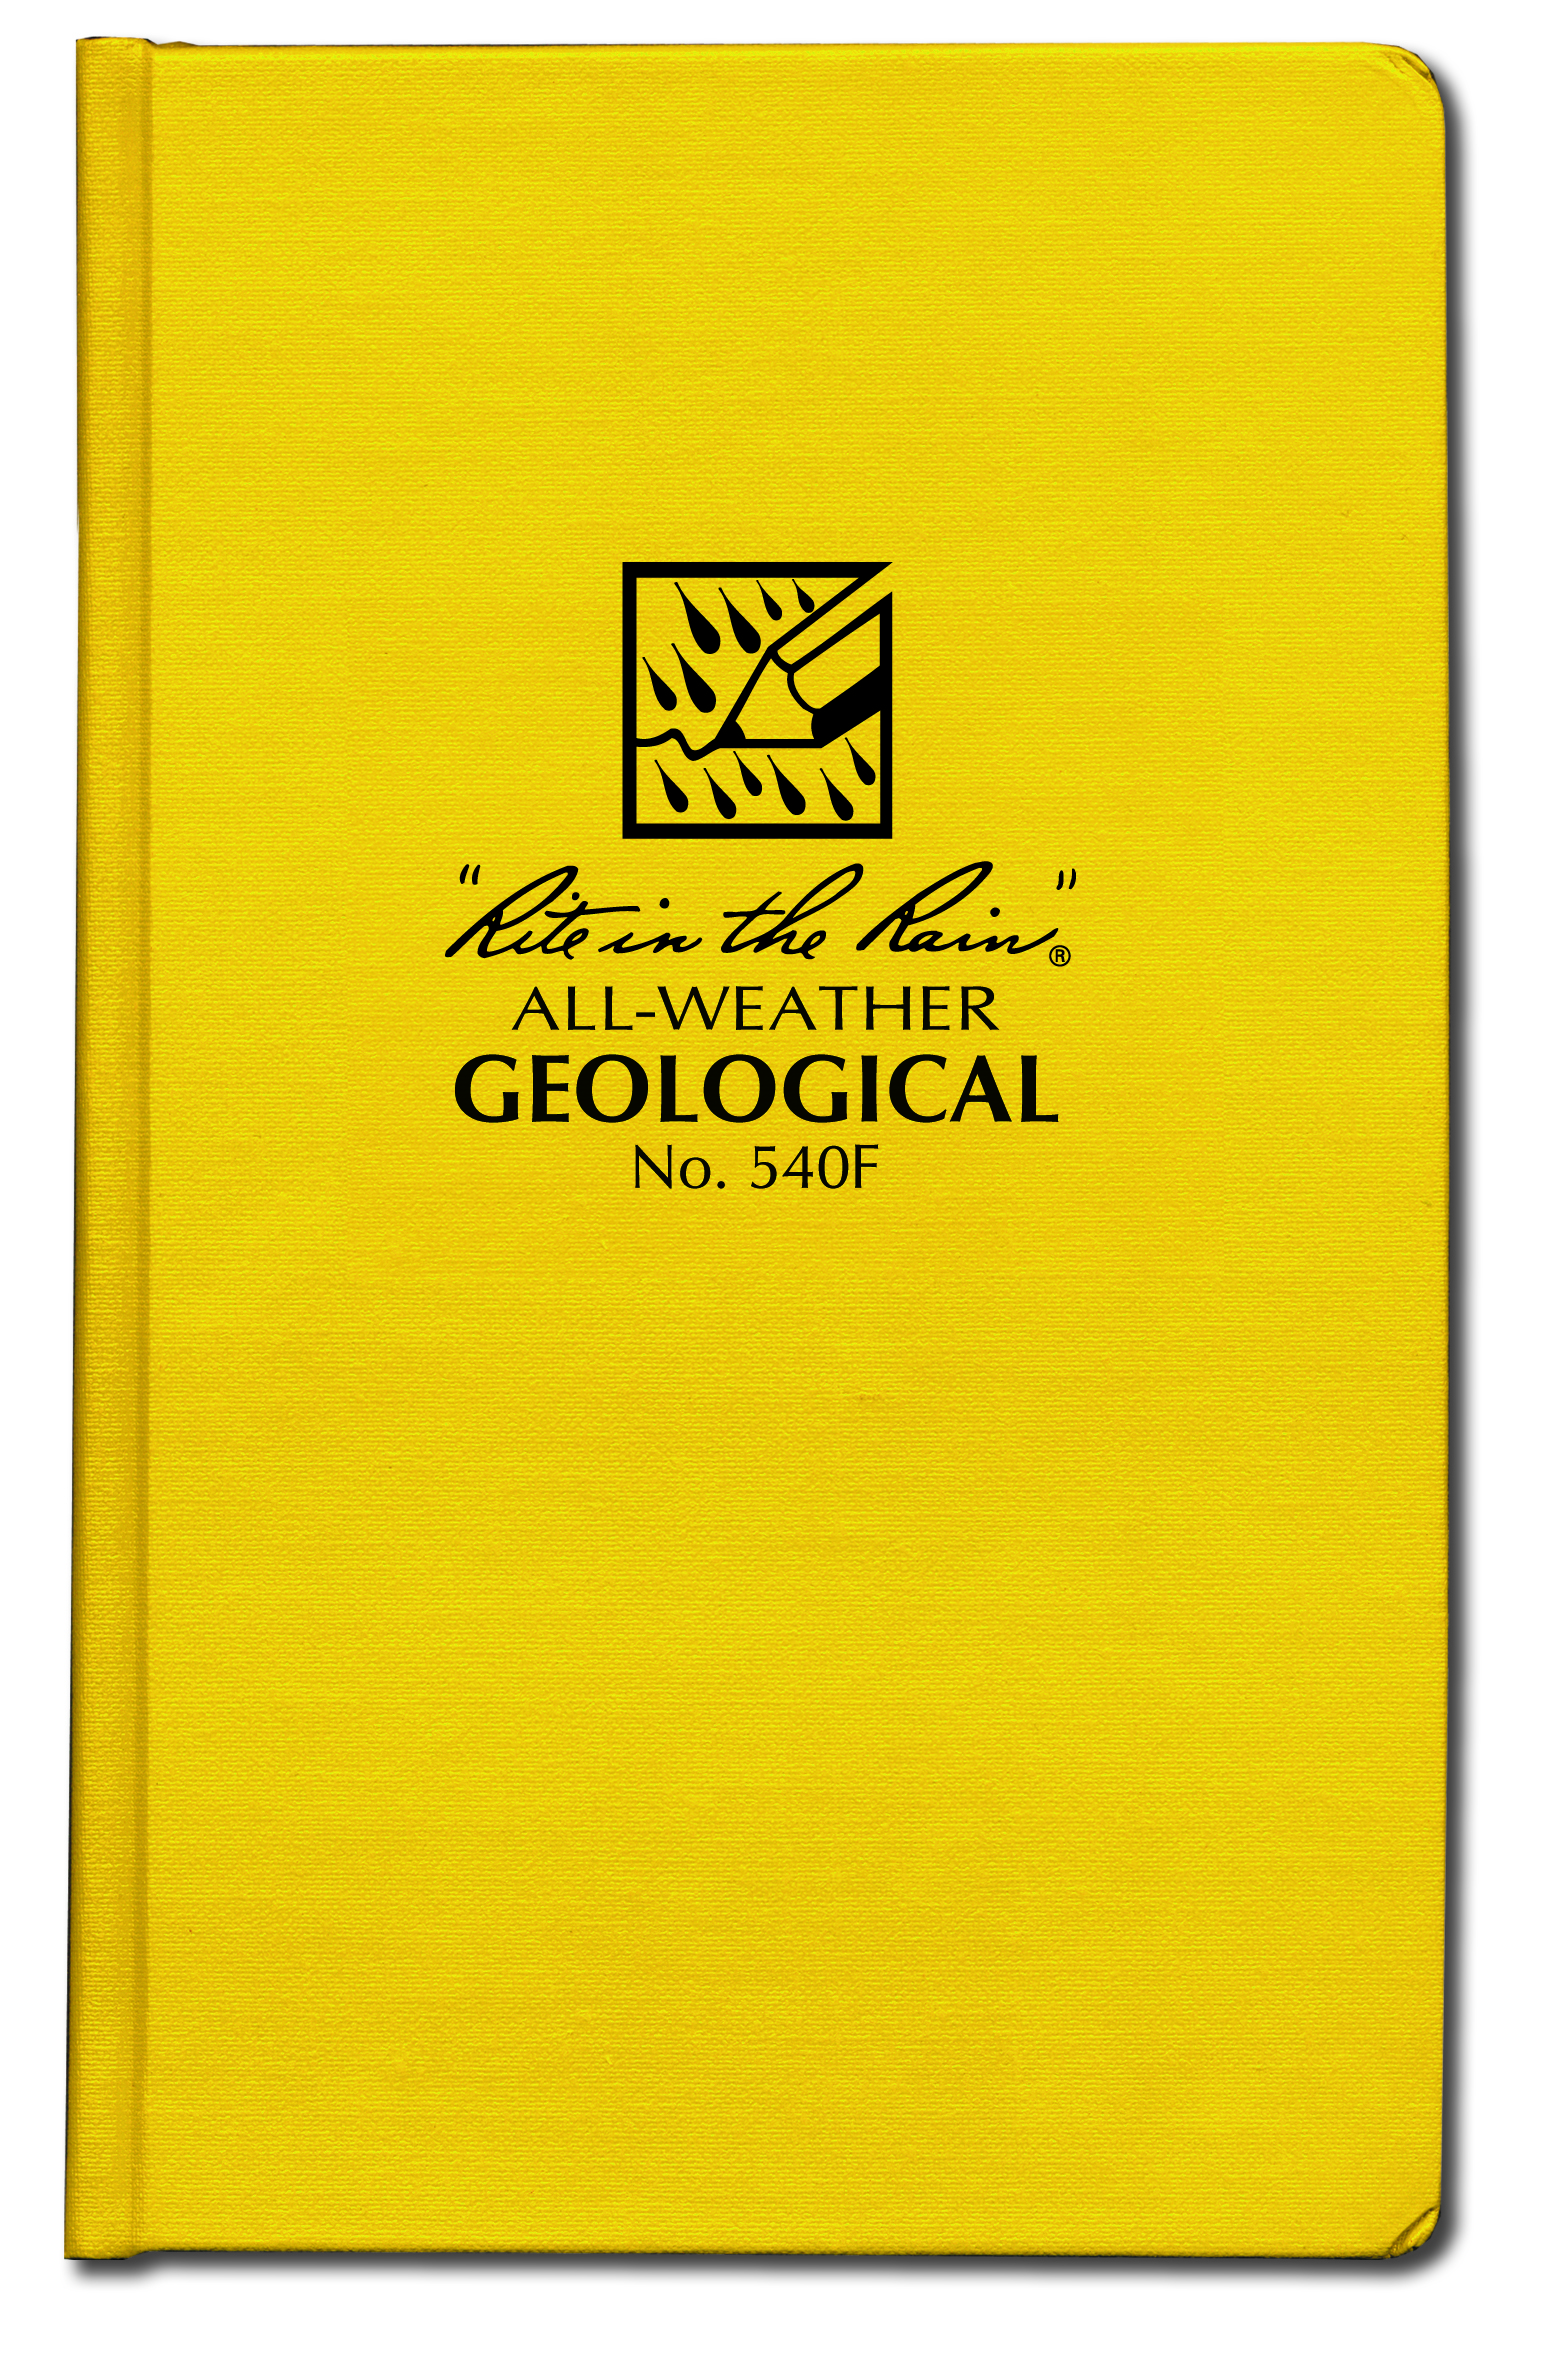 Rite In the Rain Hard Bound Geology Book with Numbered Pages